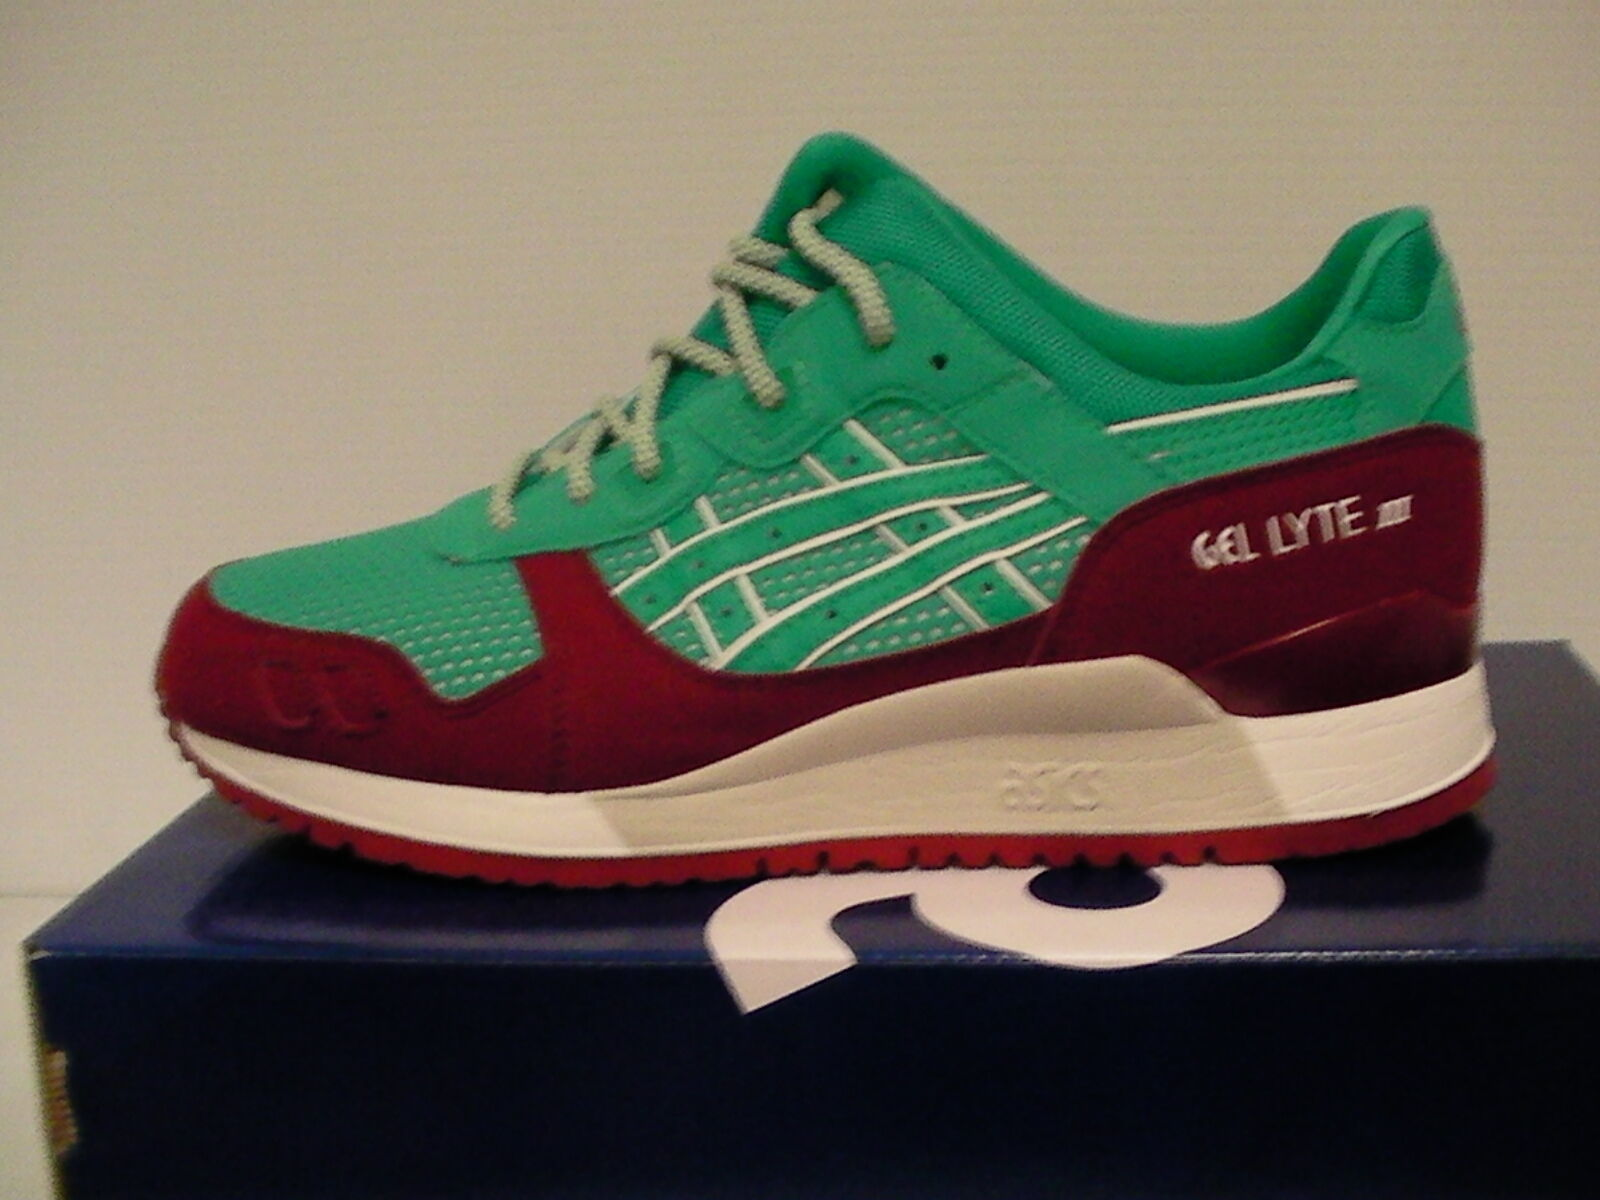 Primary image for Asics running shoes gel-lyte iii size 9 us men spectra green new with box